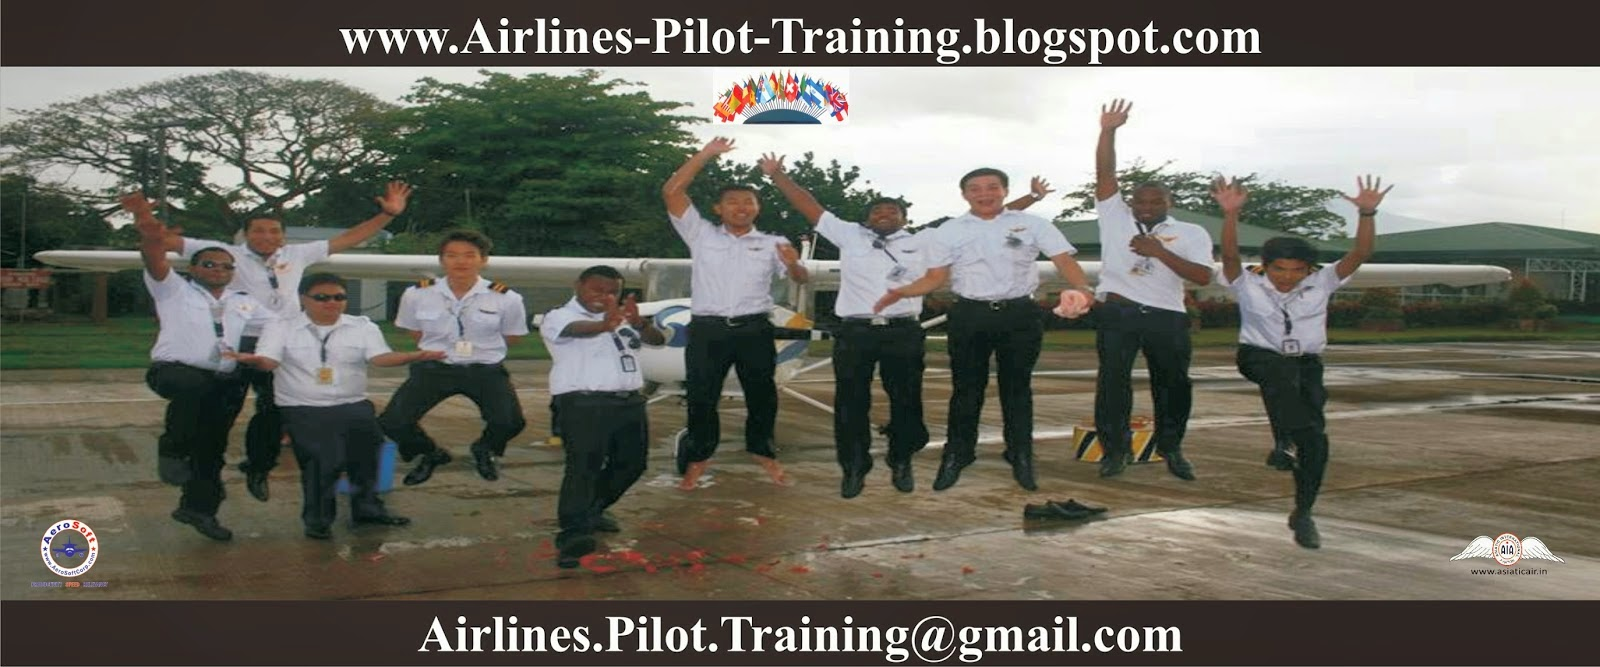 International-Airline-Pilot-Training